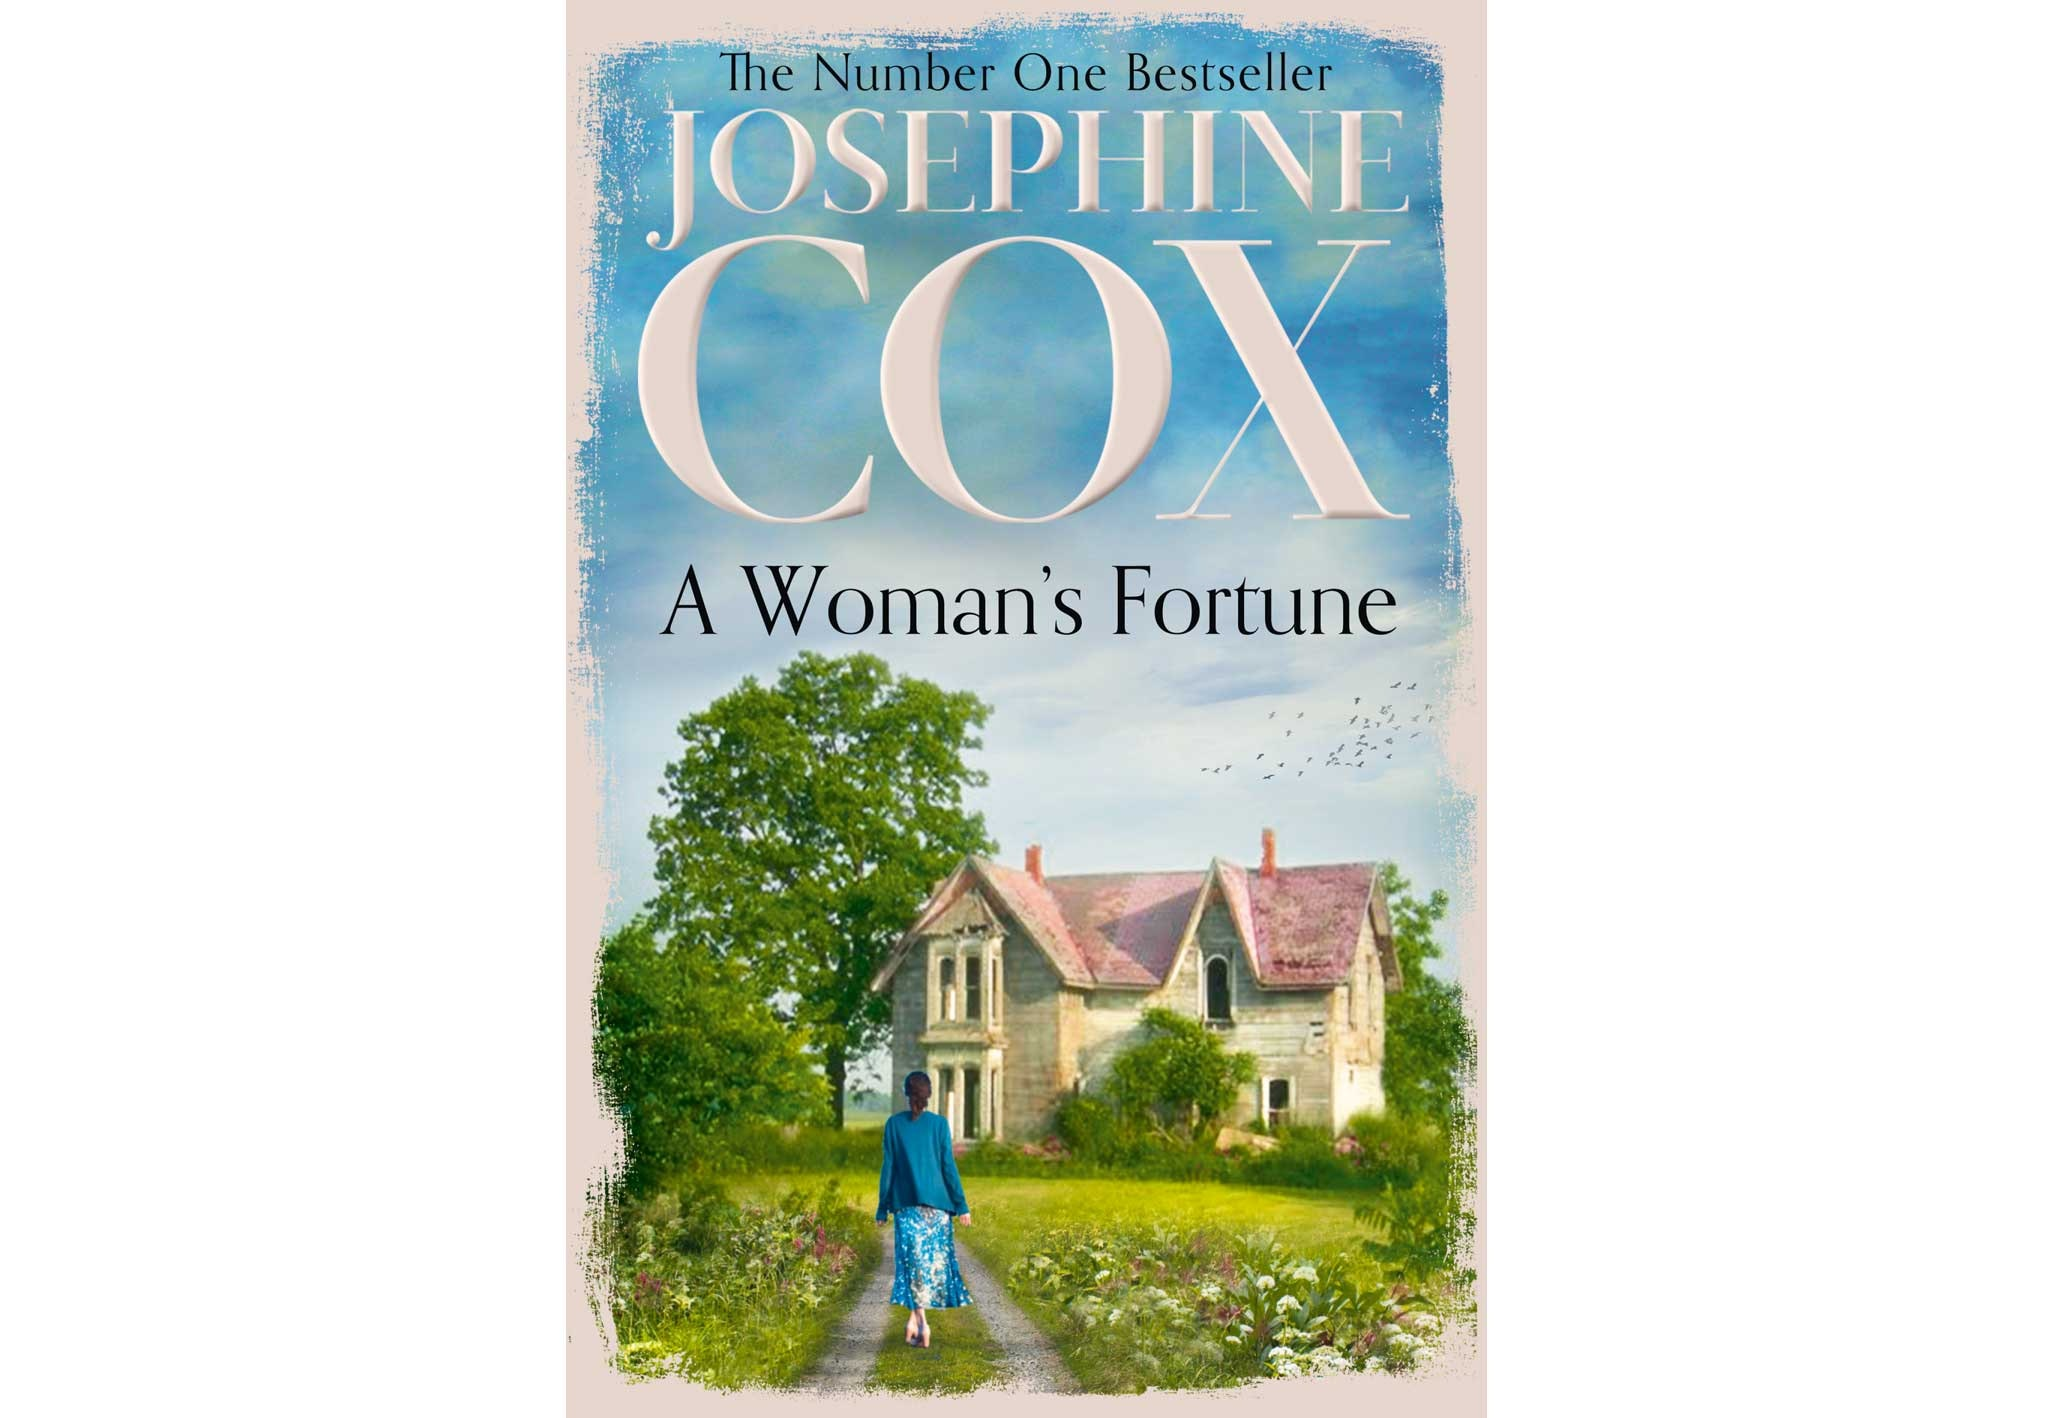 A copy of A Woman's Fortune by Josephine Cox sweepstakes